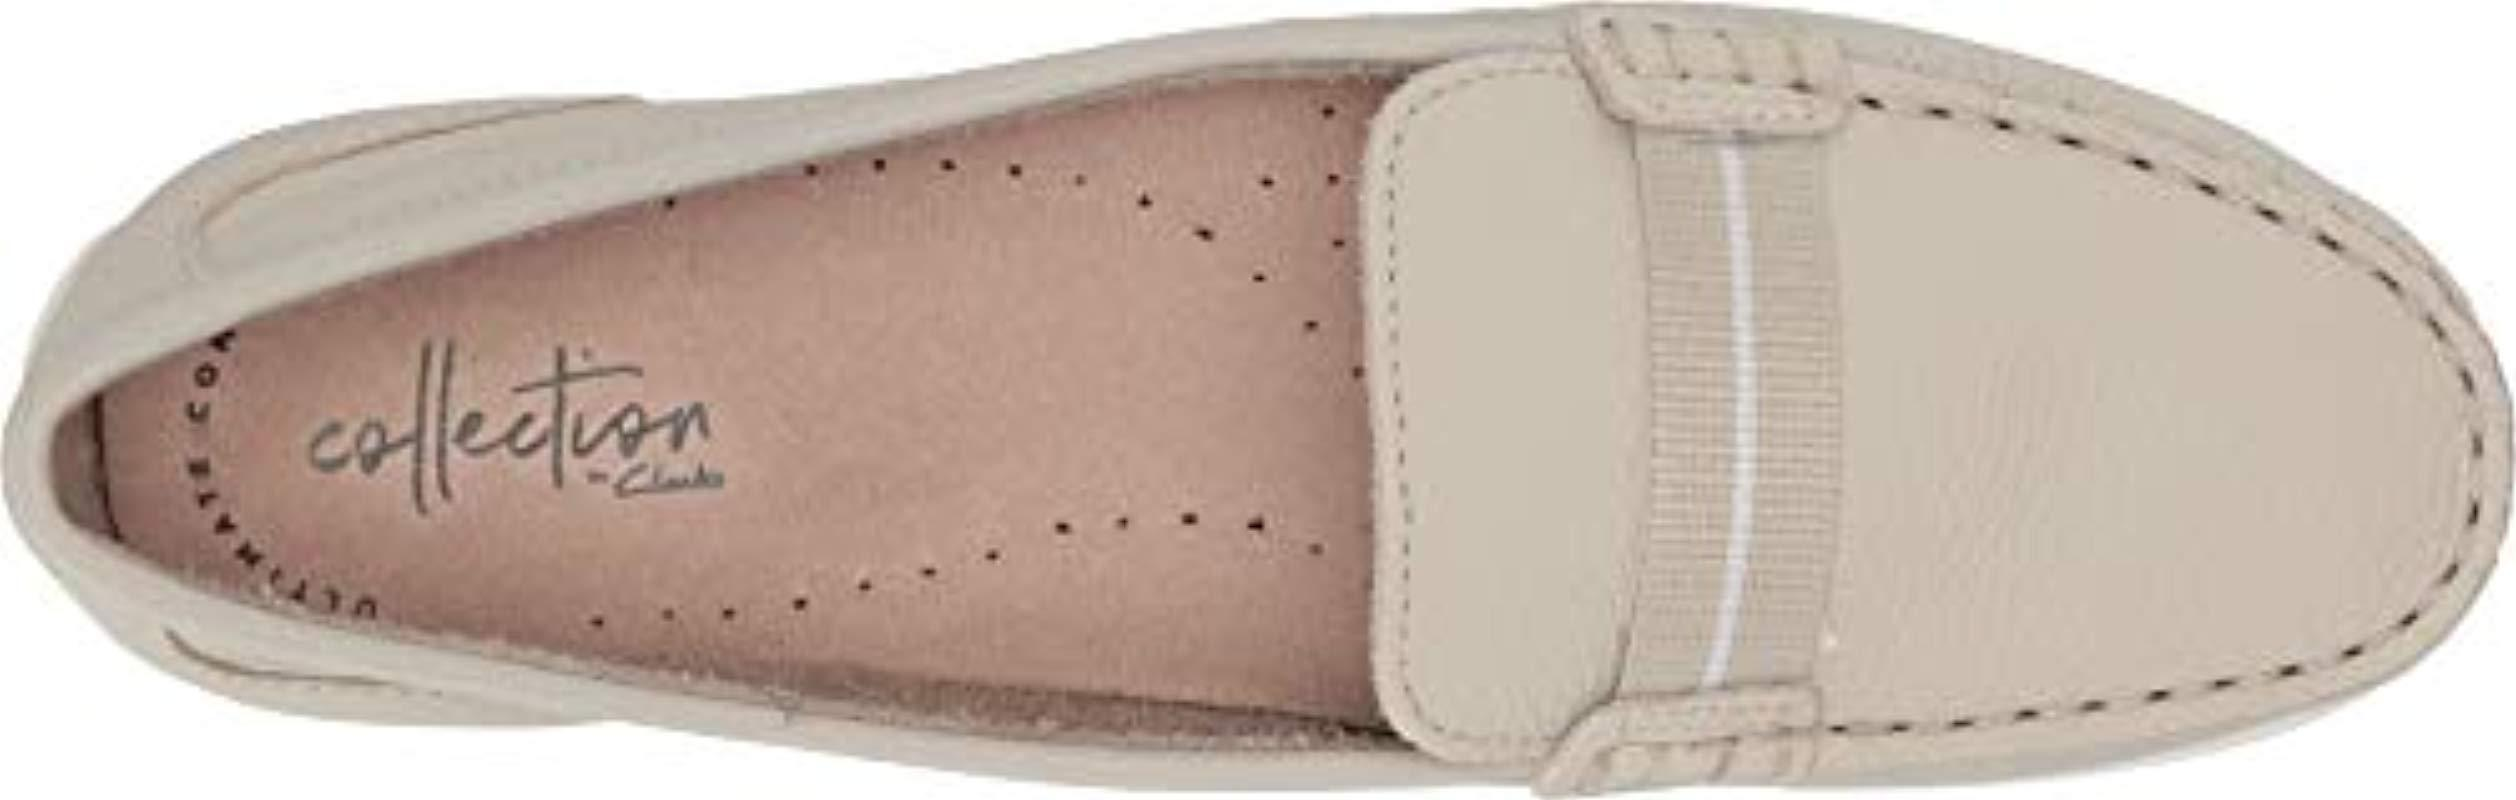 349bc3fa524 Clarks - White Dameo Vine Driving Style Loafer - Lyst. View fullscreen